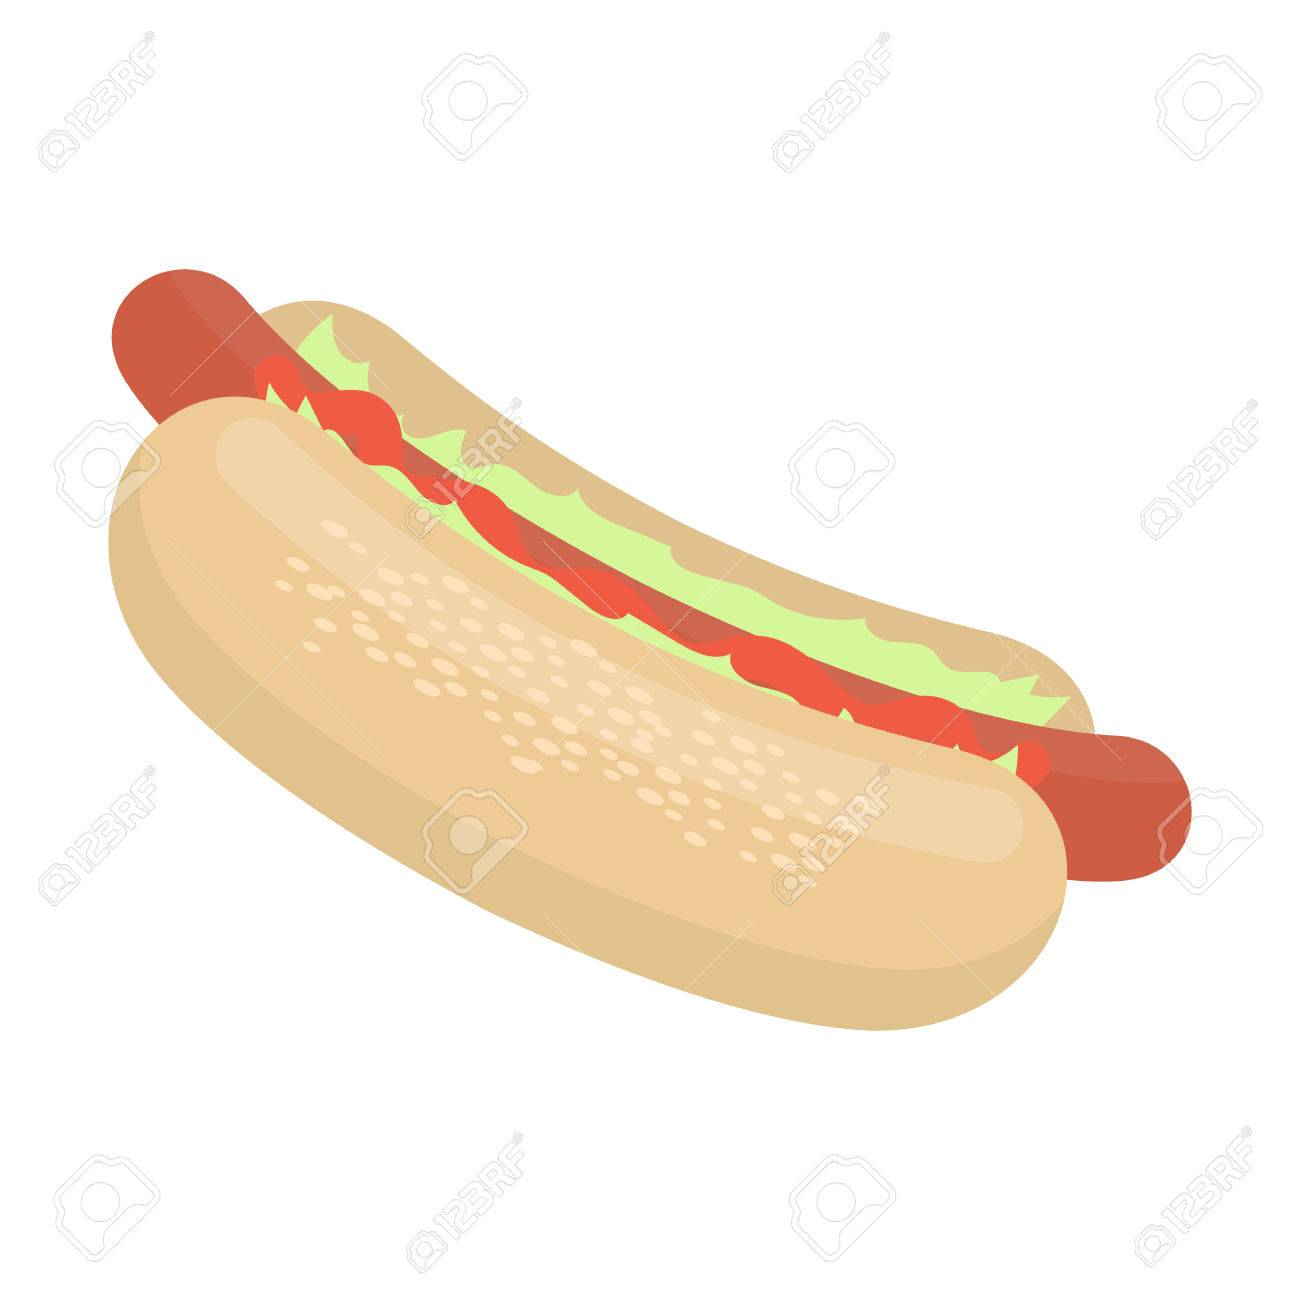 Hot Dog Vector Illustration Icon In Cartoon Design Royalty Free